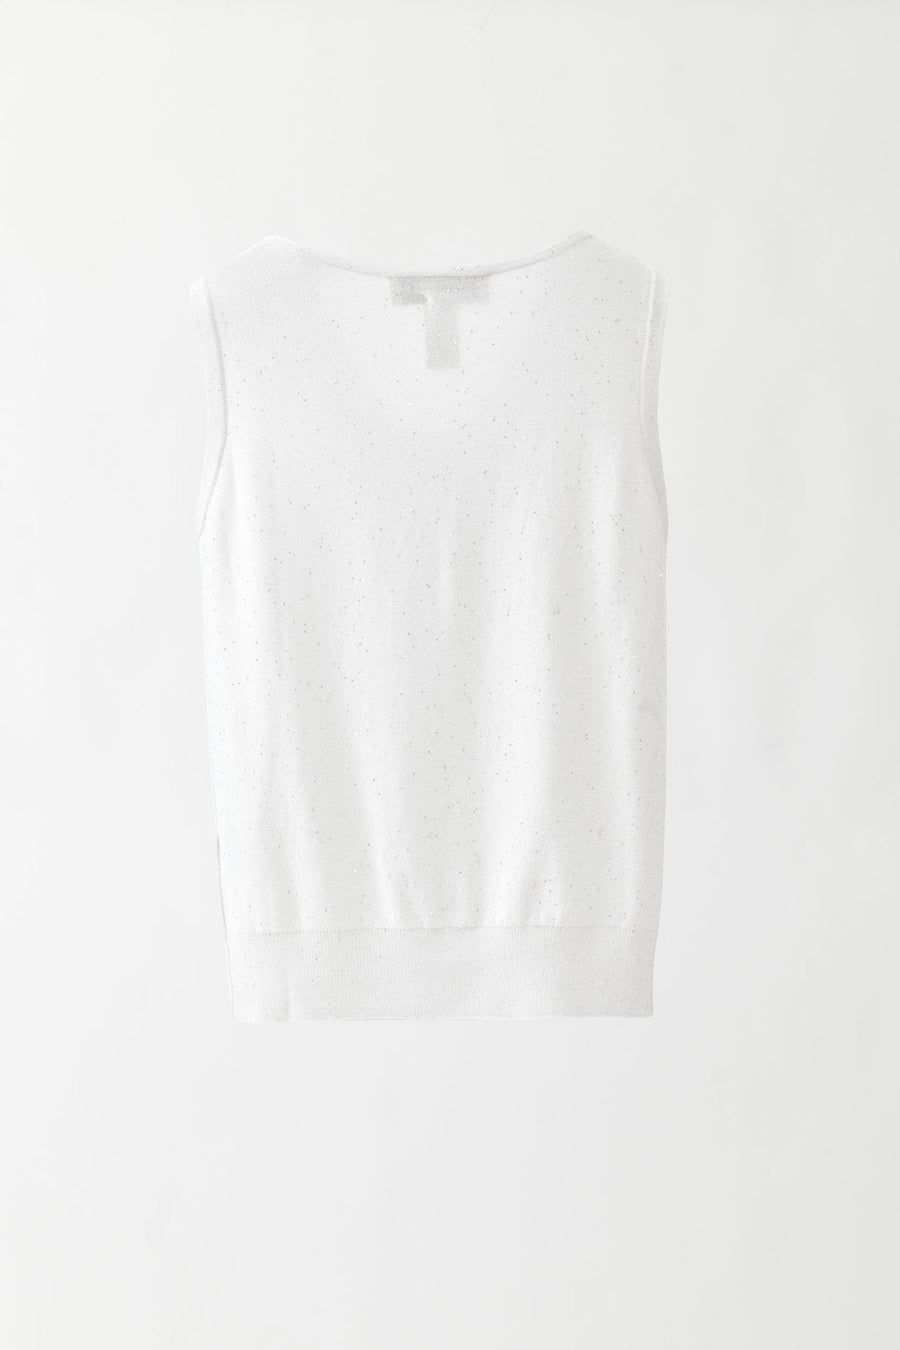 Copy of Knit top N°15